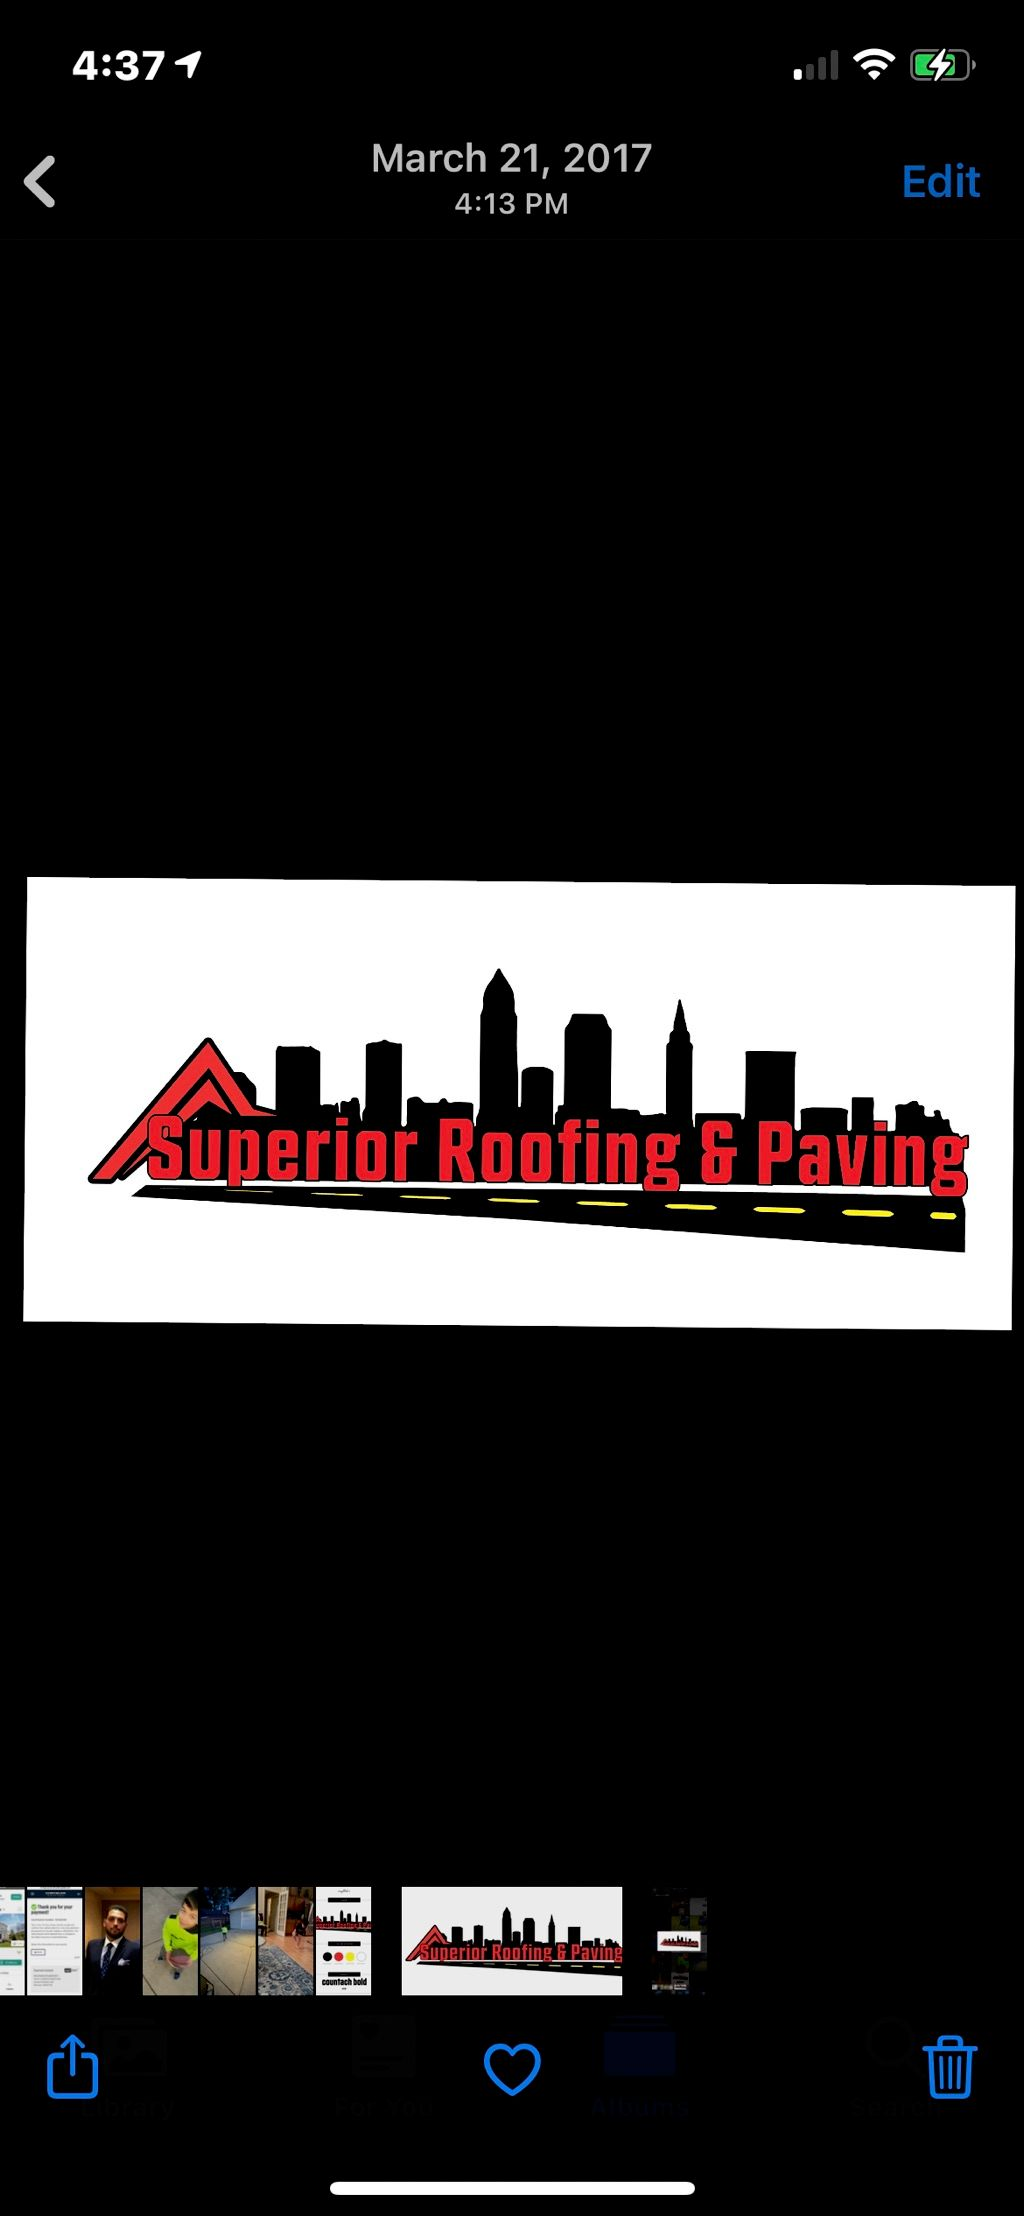 Superior Roofing & Paving